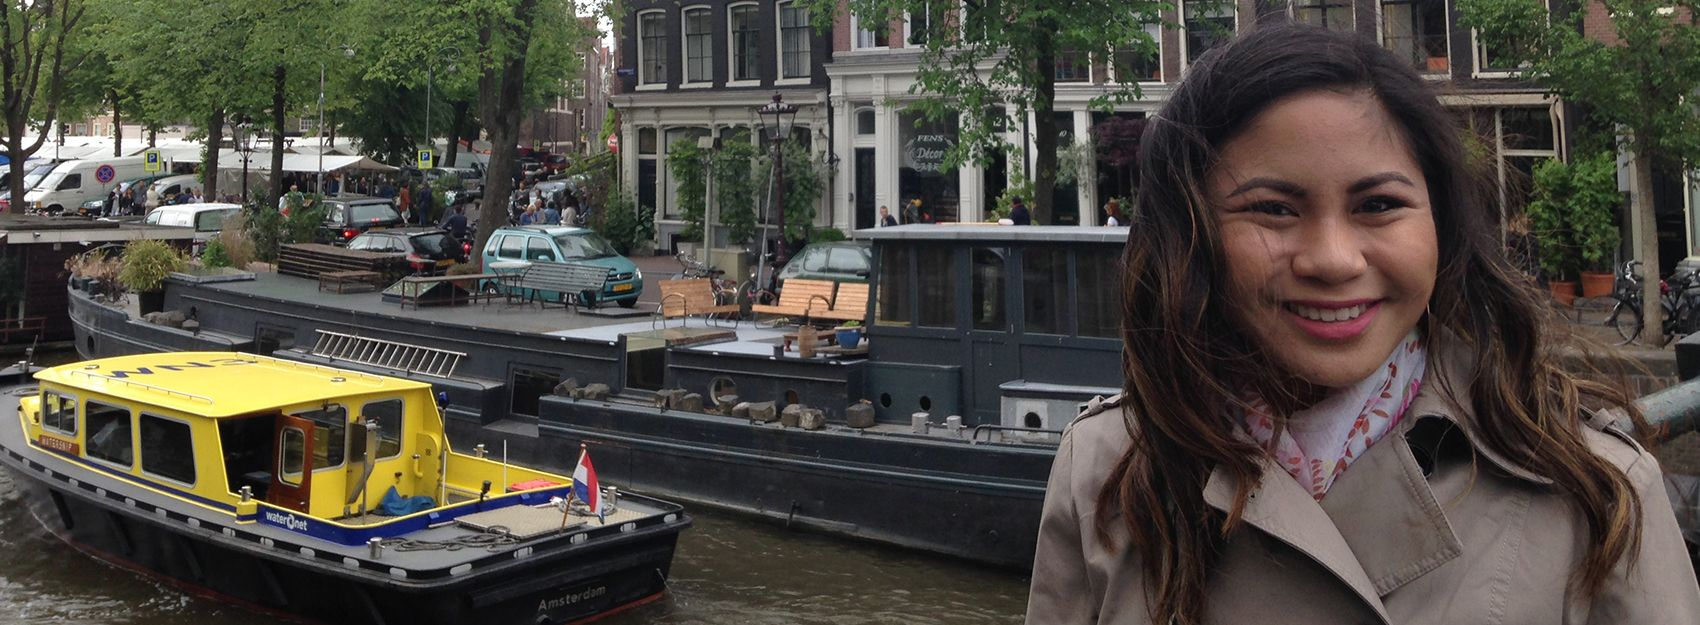 IES Abroad Amsterdam Business student at the canal